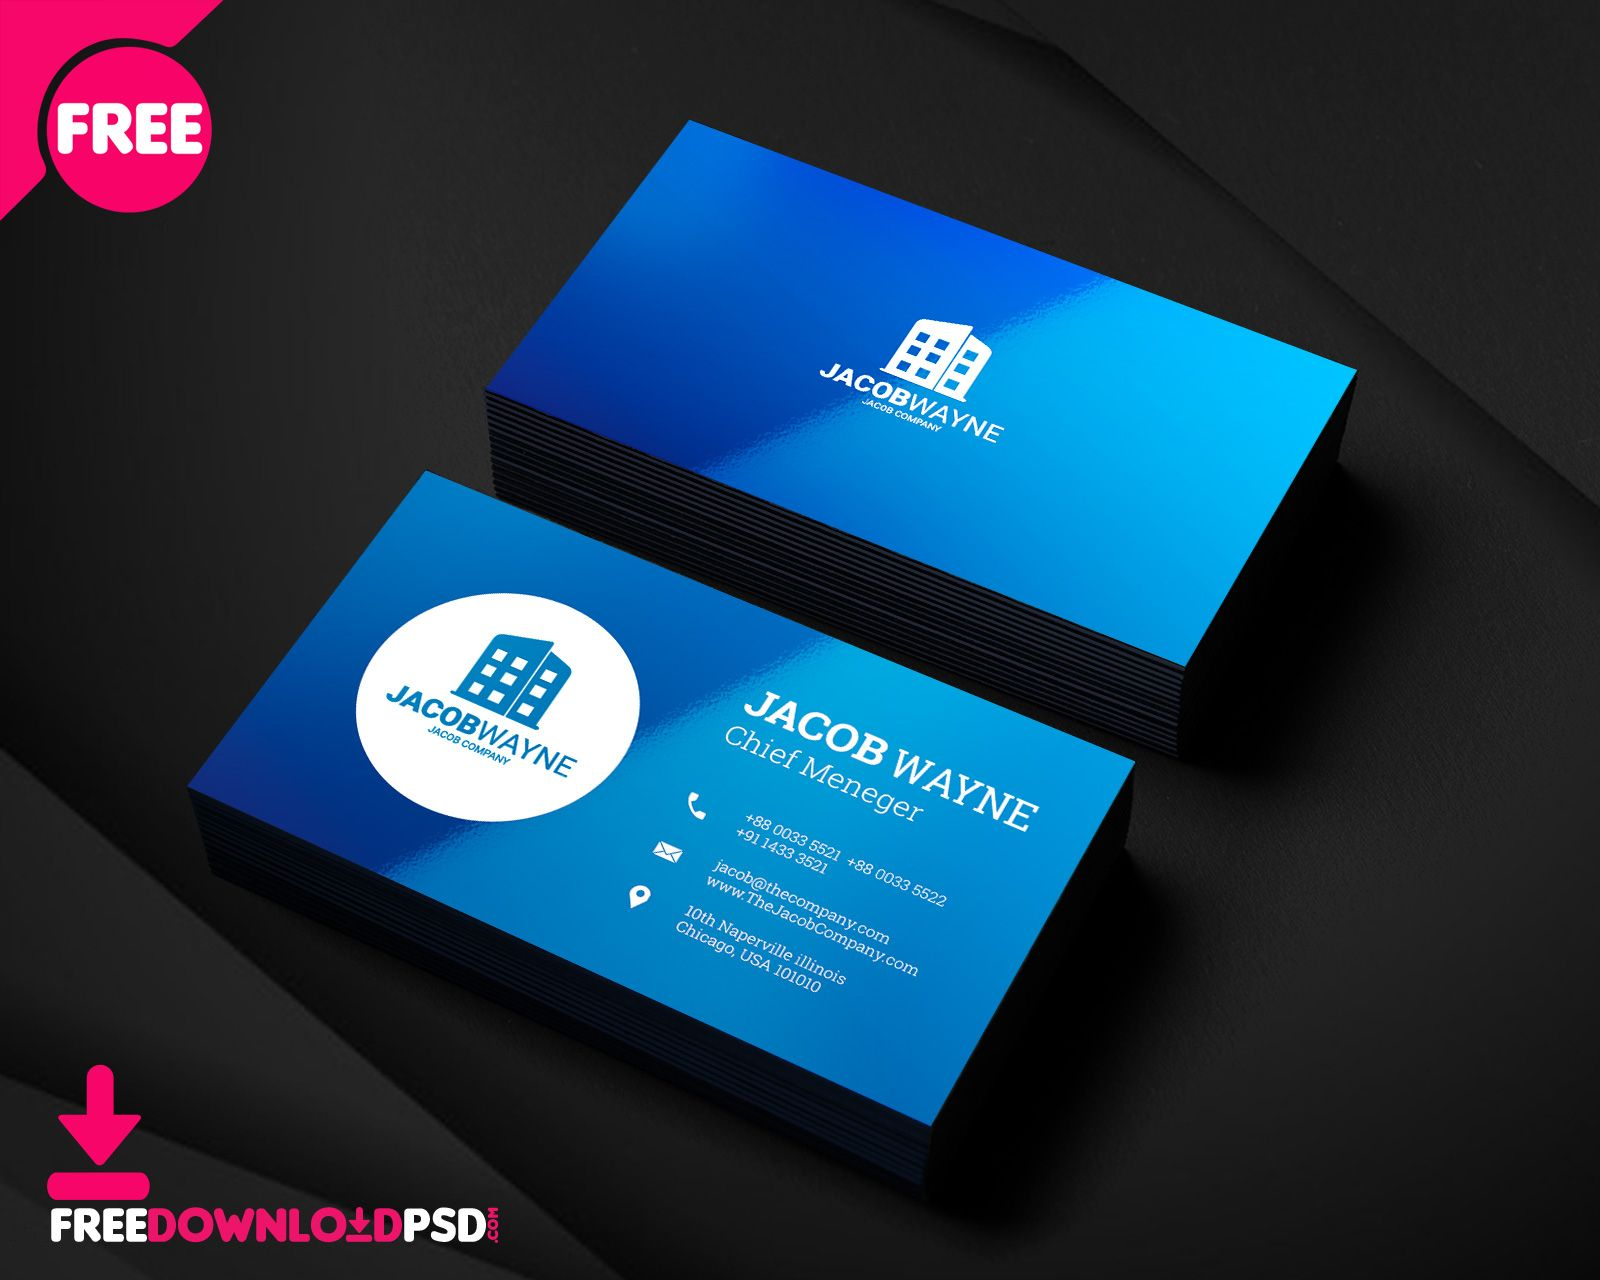 Real Estate Business Card Psd Freedownloadpsd Inside Photoshop Cs6 Business Card Template Business Card Template Psd Create Business Cards Business Card Psd Business card template psd free